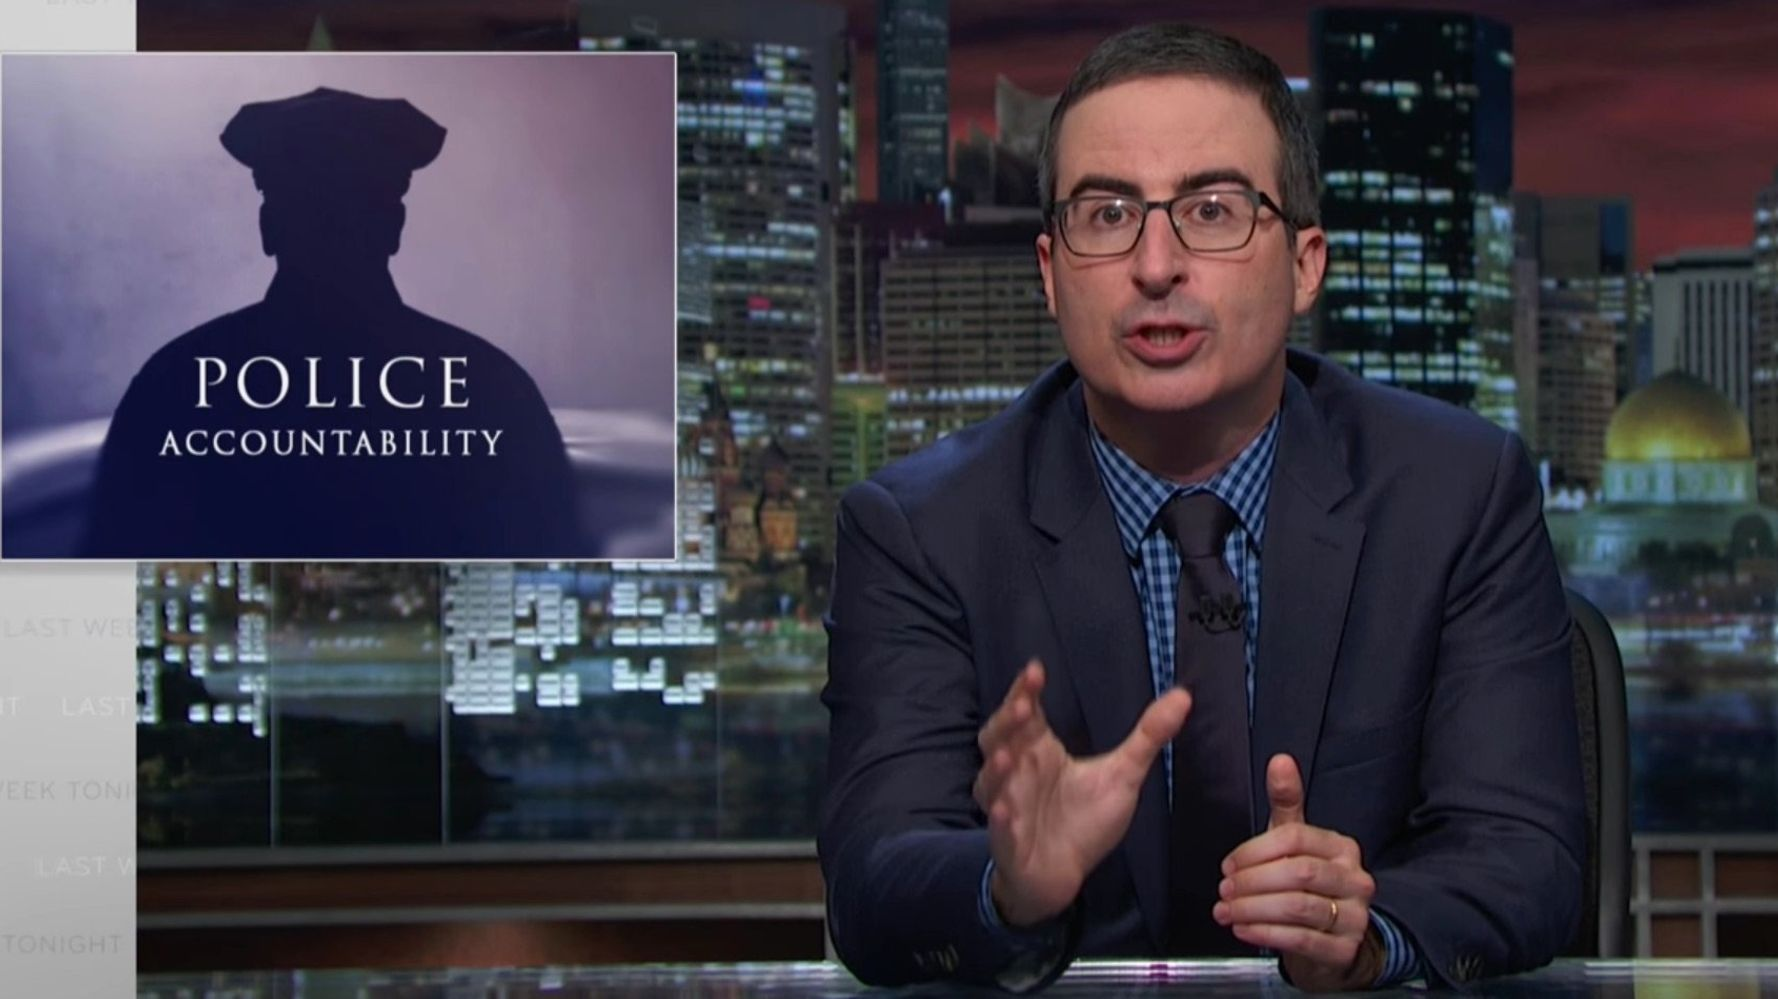 John Oliver Shows How Police Problems Go Far Beyond 'A Few Bad Apples'